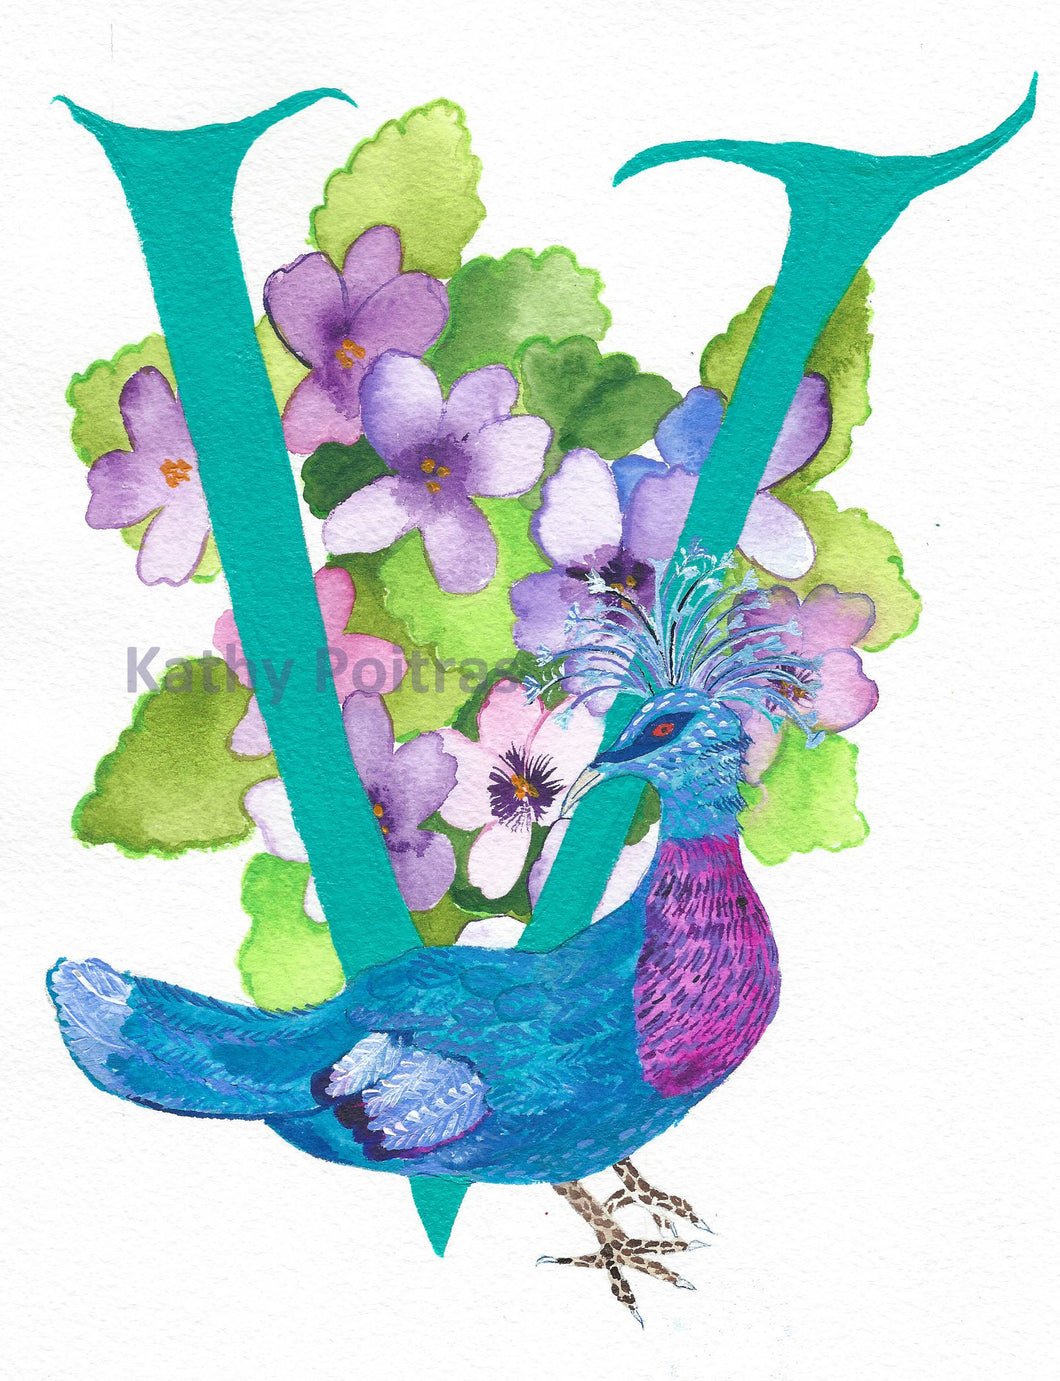 Letter V for Victorian Pigeon and Violets, by artist Kathy Poitras.